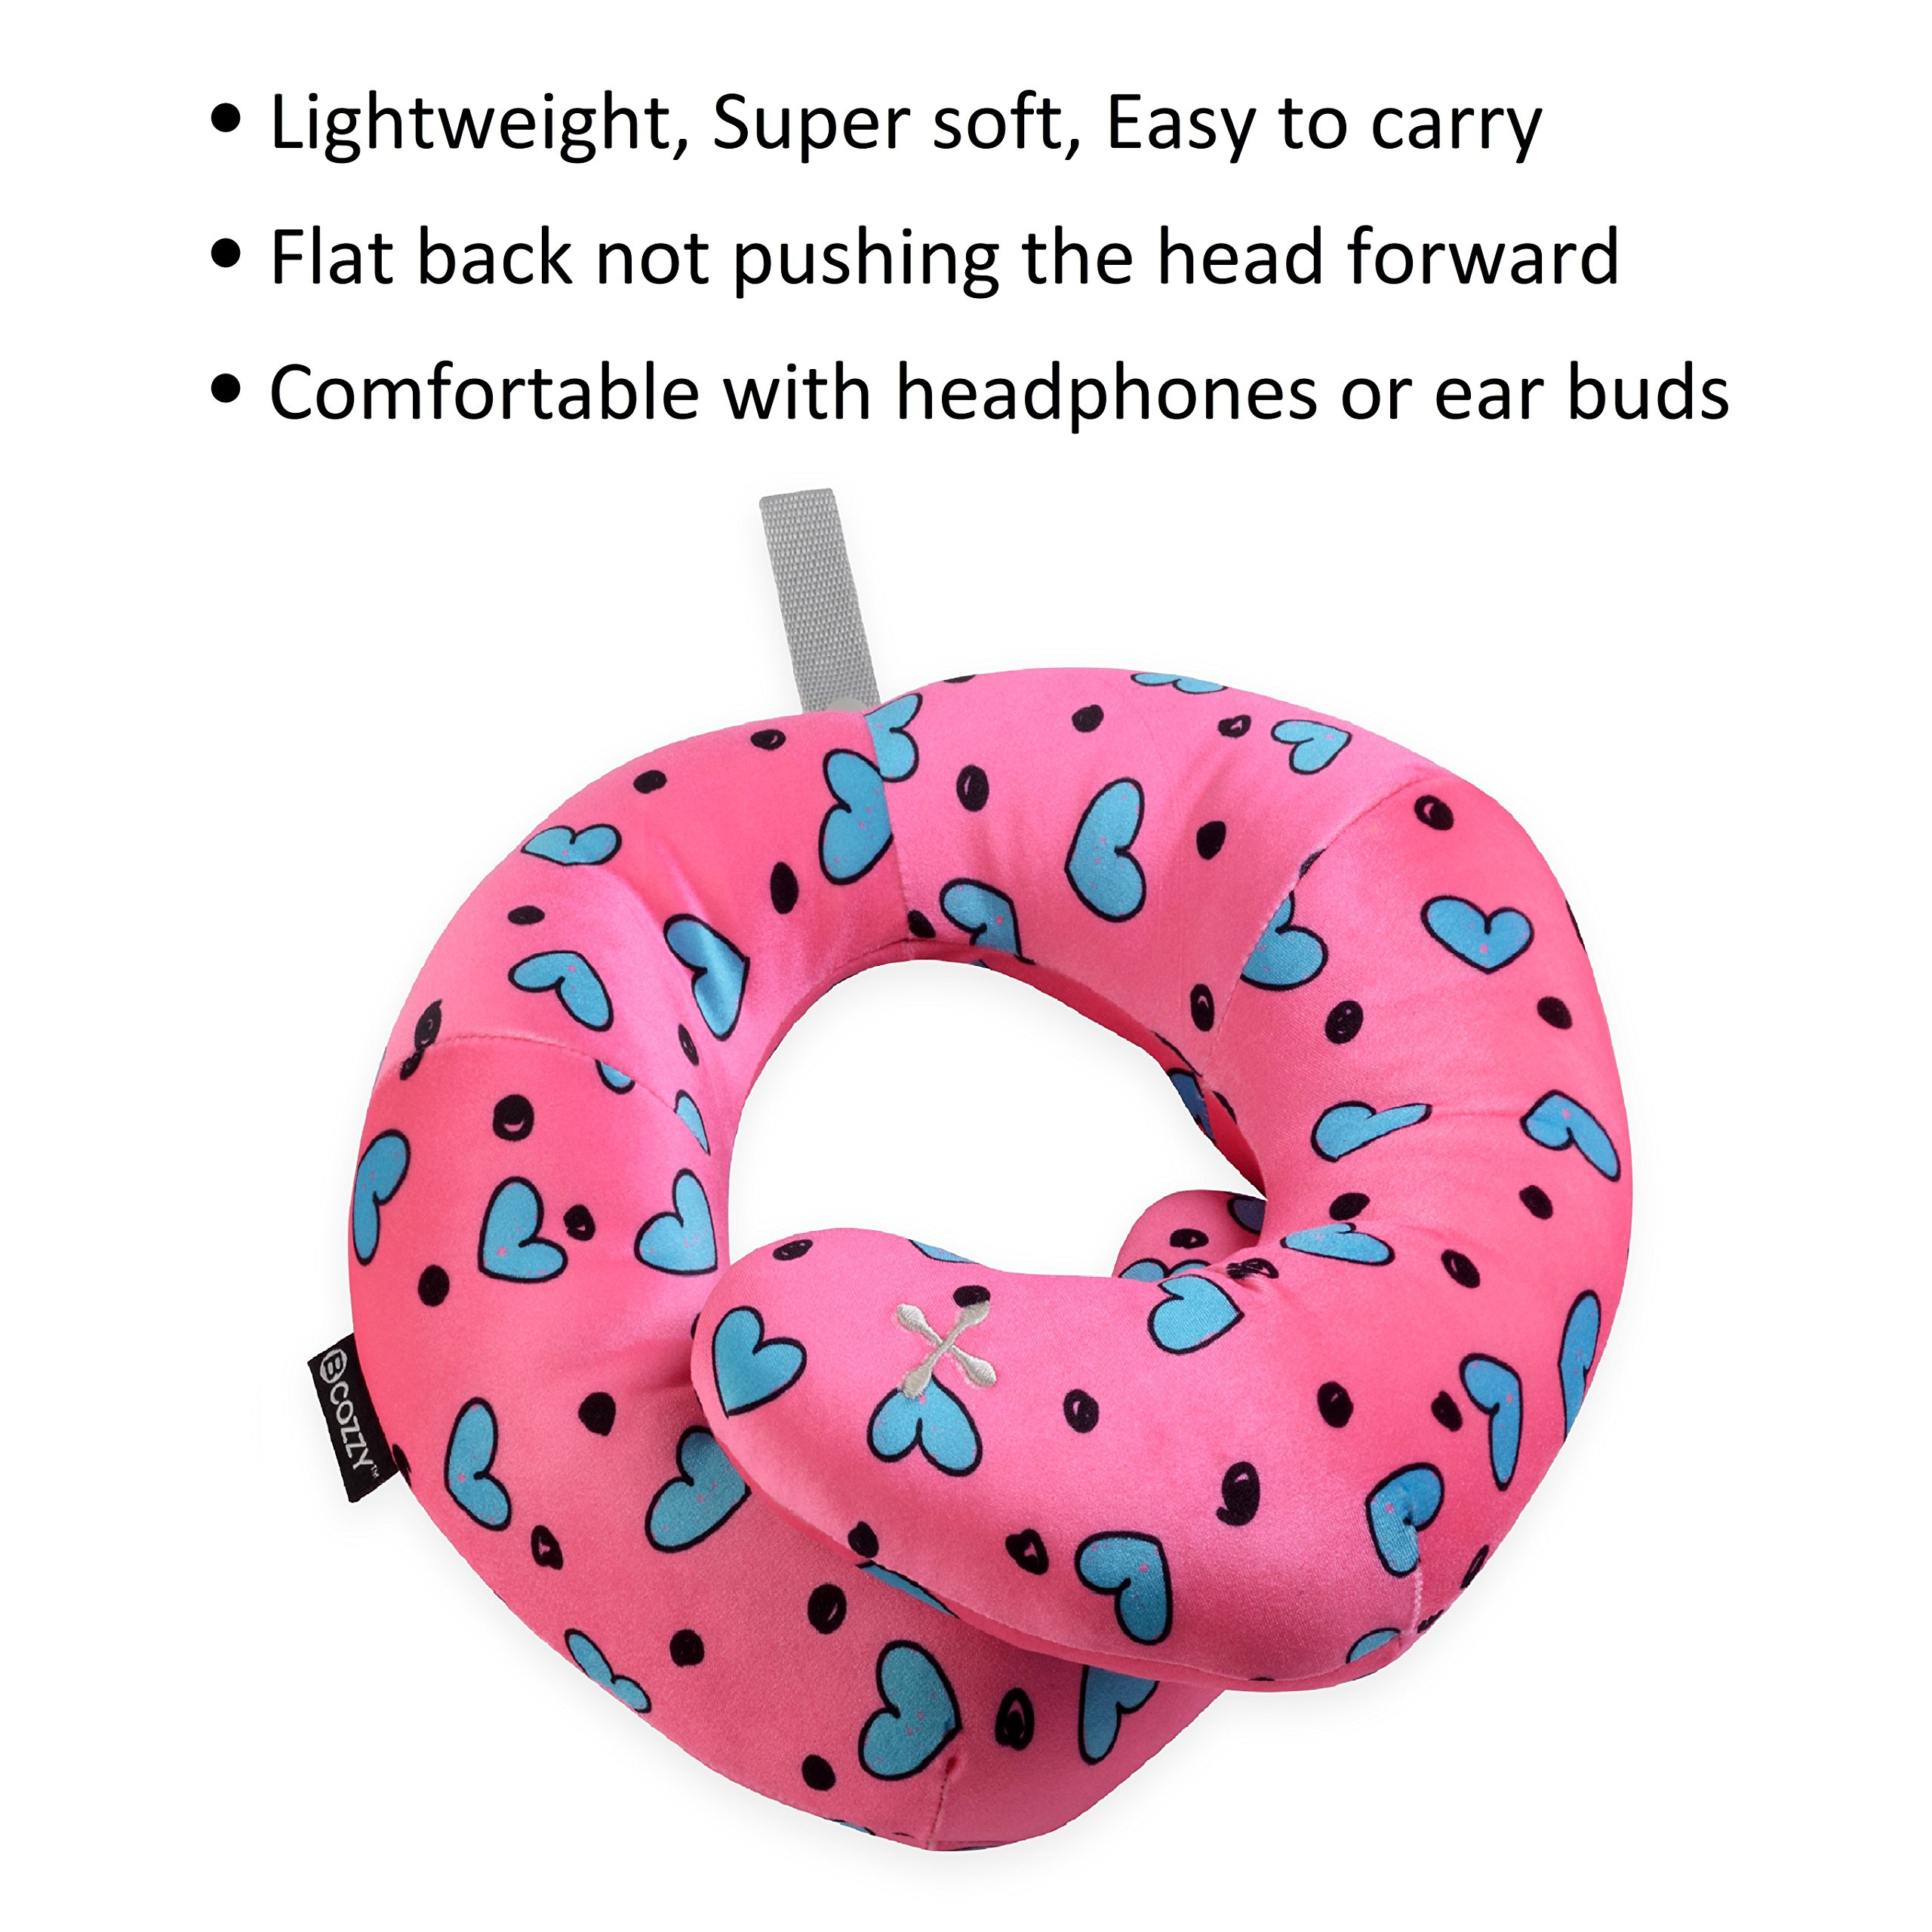 BCOZZY Kids Chin Supporting Travel Neck Pillow - Supports The Head, Neck Chin in in Any Sitting Position. A Patented Product. Child Size, Turquoise Hearts by BCOZZY (Image #4)